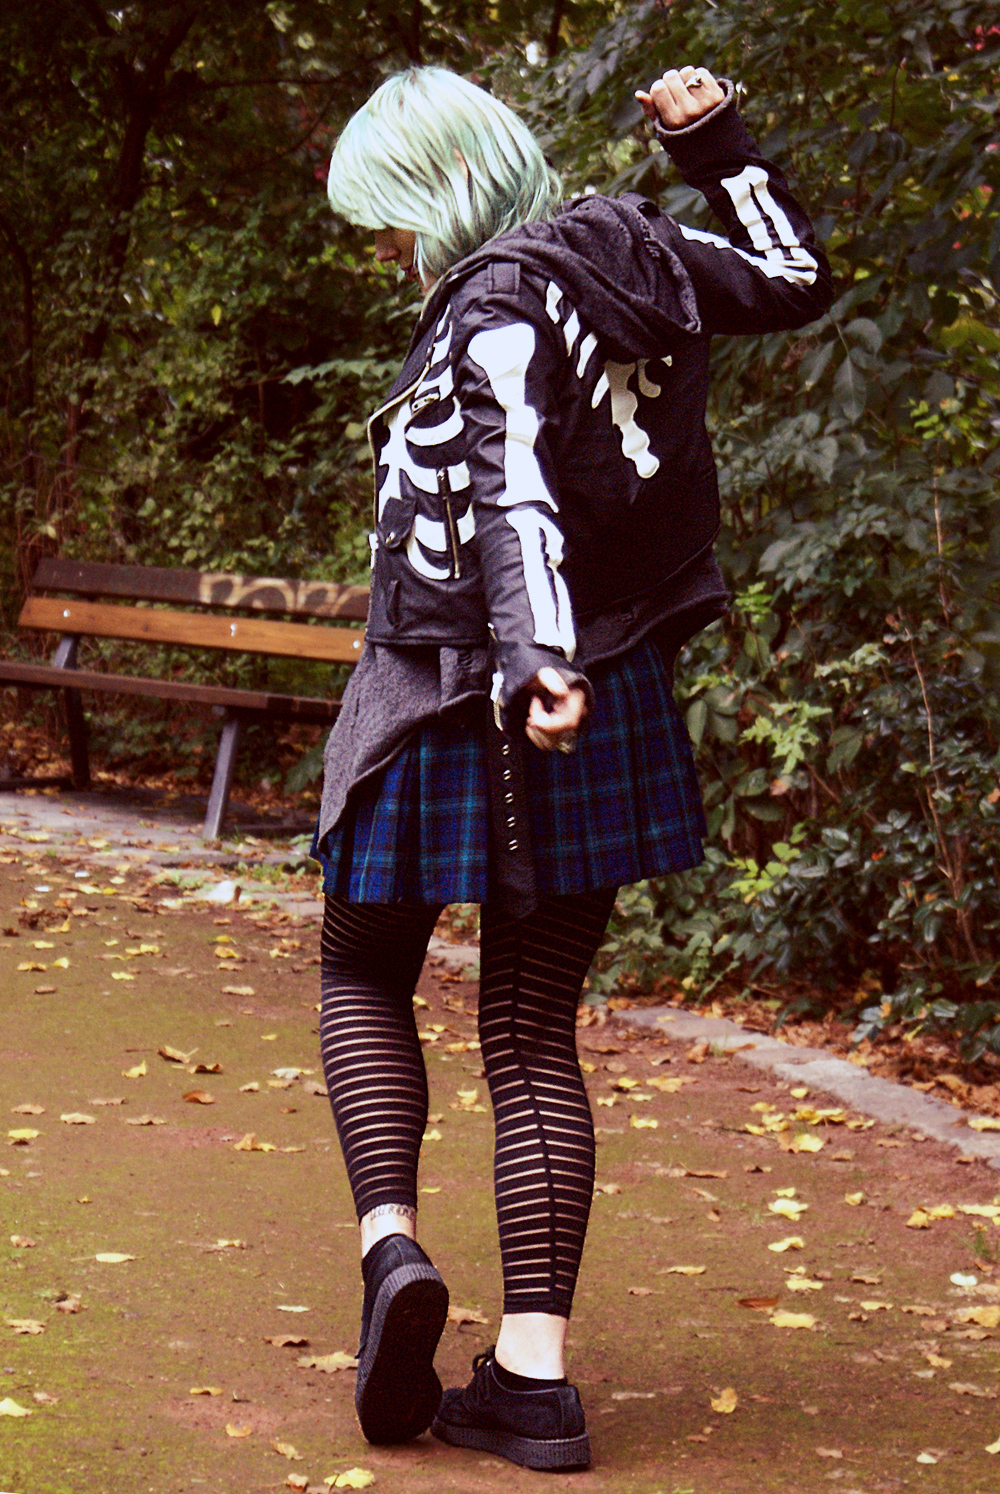 unif, moto jacket, moto, boneycard, karo, rock, skirt, h&m, wir sind die toten, winona ryder, winona, charlotte, dollskill, streifen, leggings, creepers, dragon tattoo, trish summerville